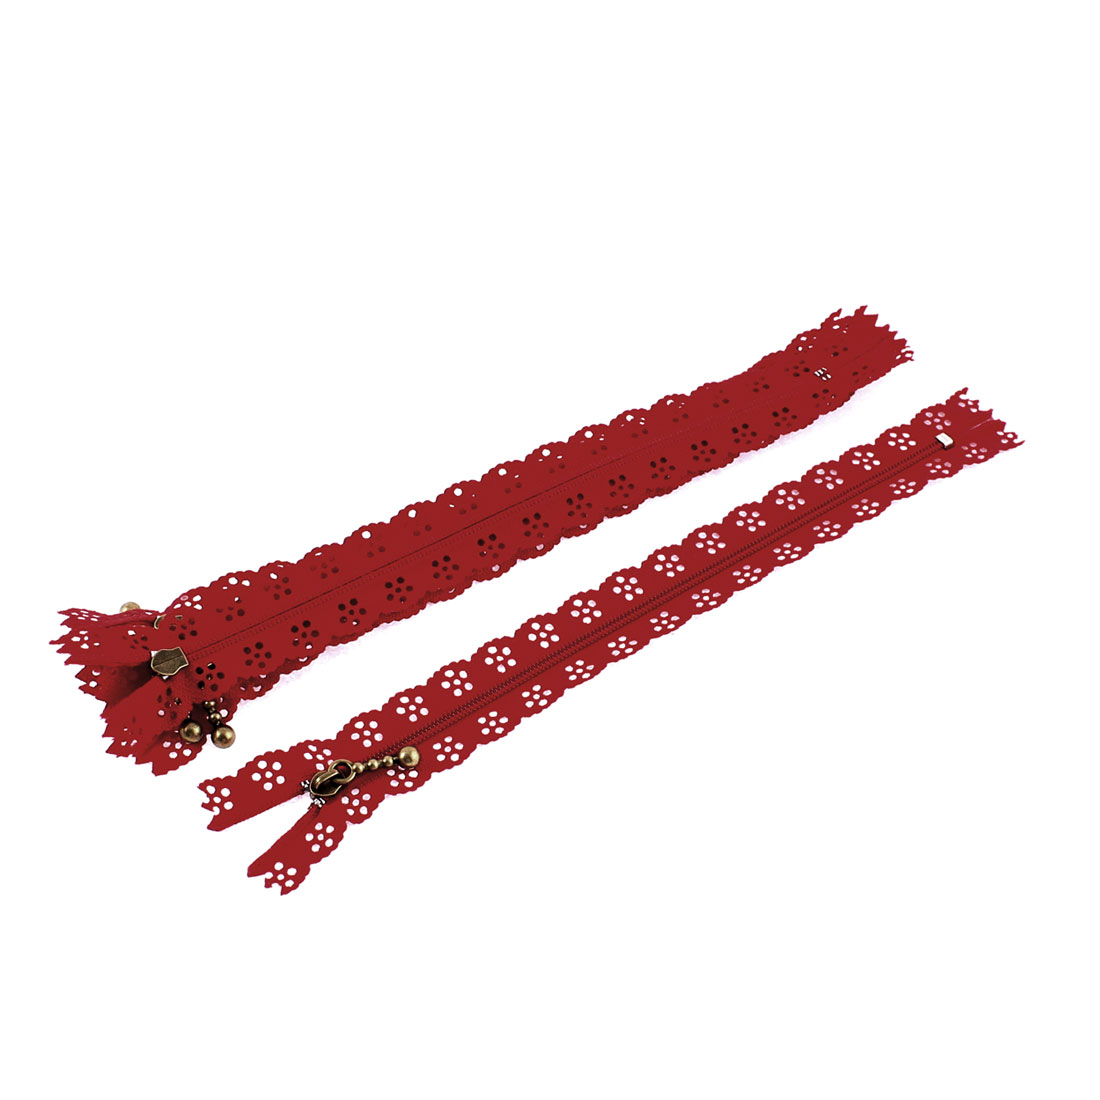 Nylon Coil Zippers Lace Edge Tailor Bag Clothing DIY Craft Red 20cm 5 Pcs